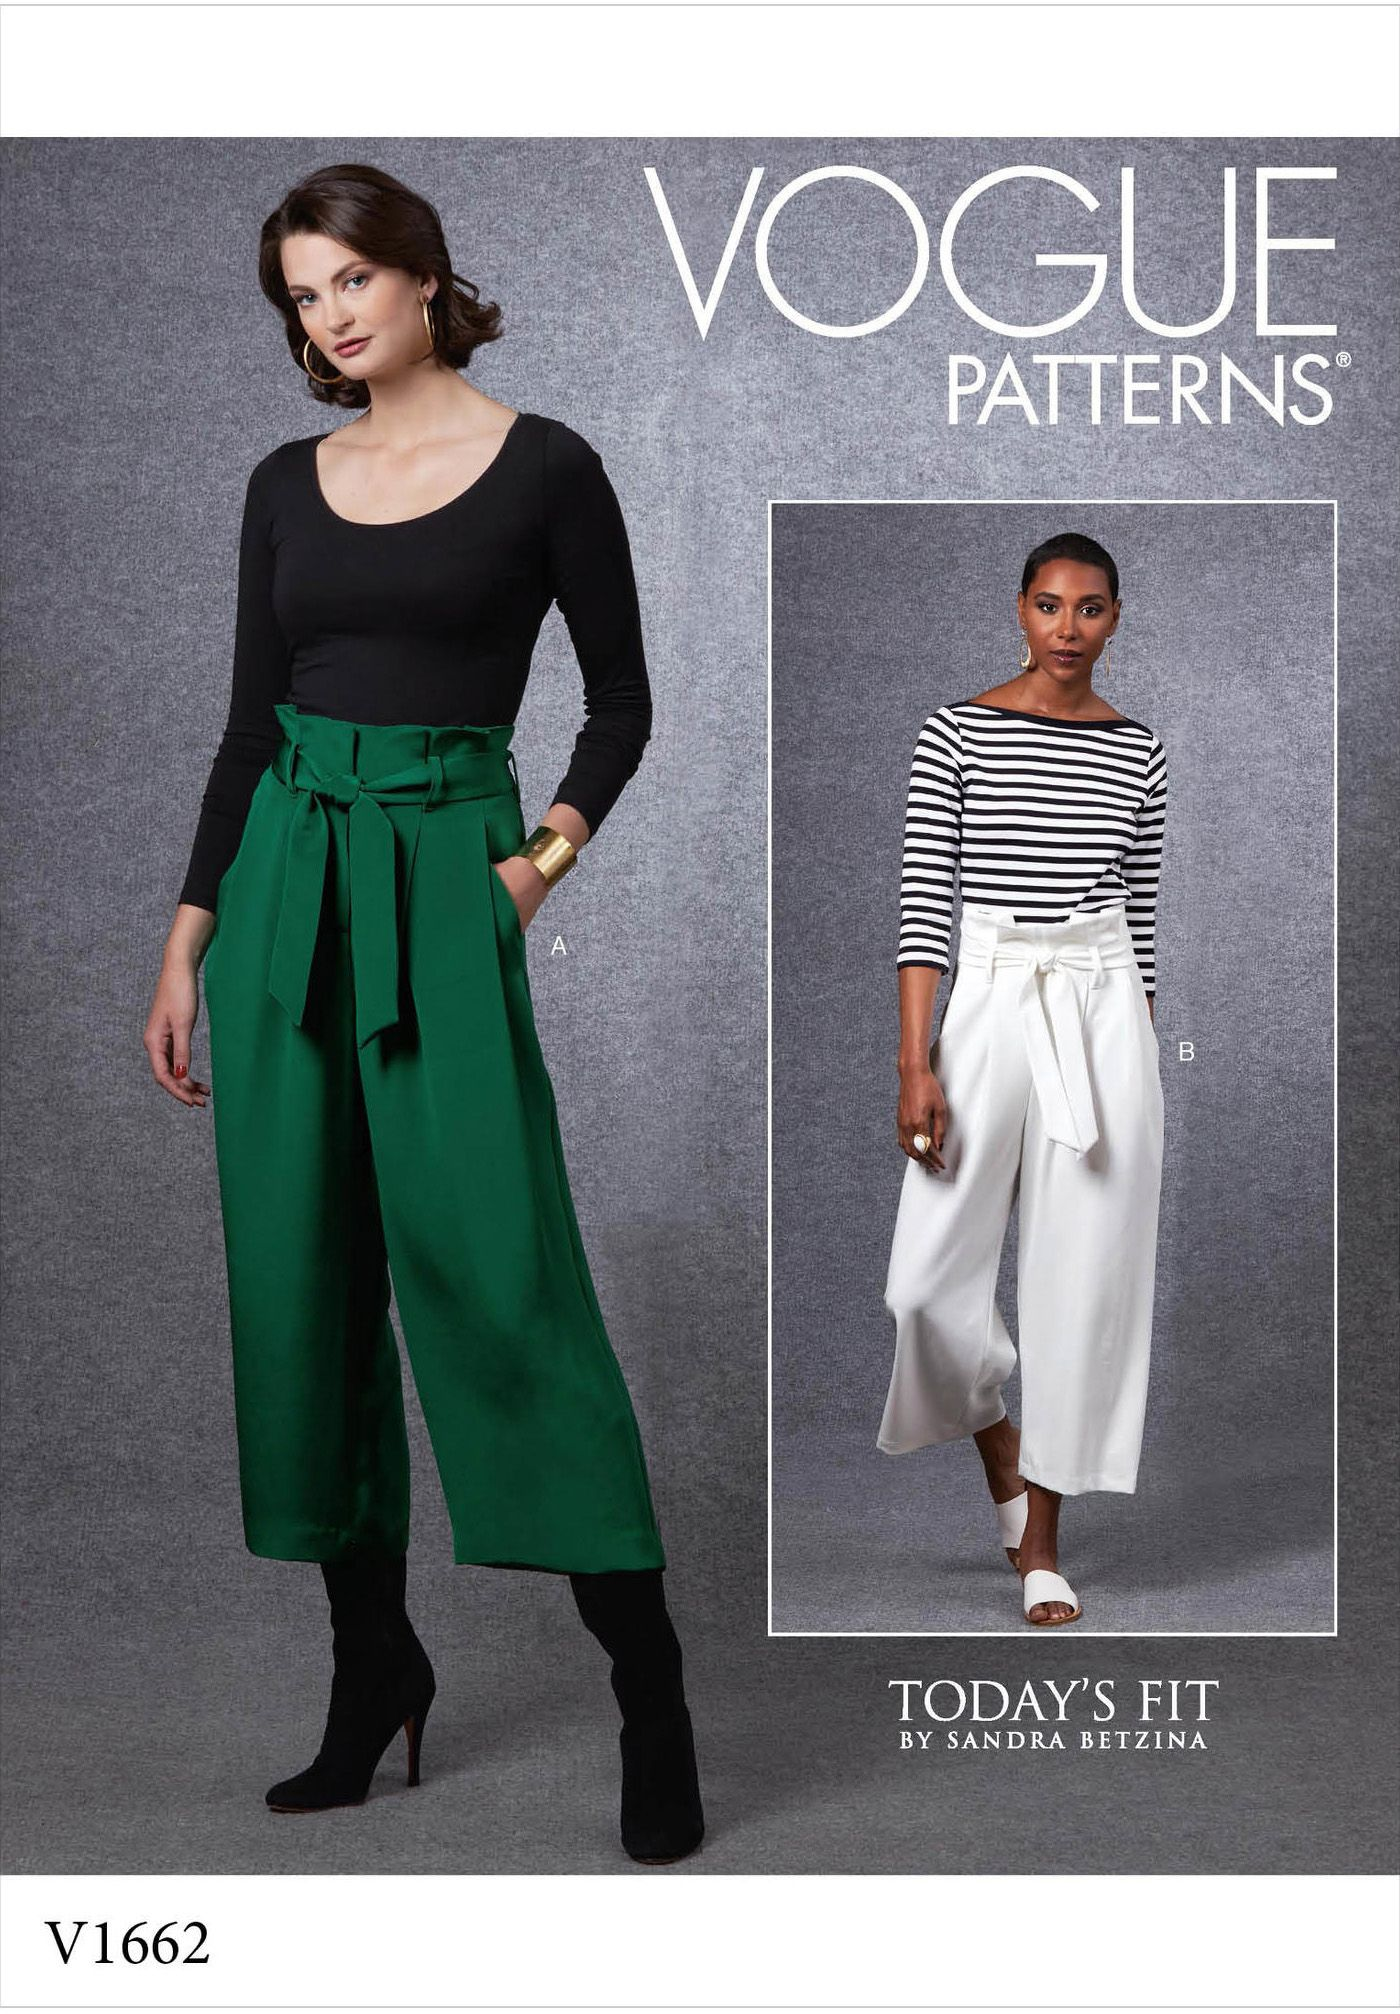 Vogue 1662 Pants And Belt V1662 Very Loose Fitting Pants Have